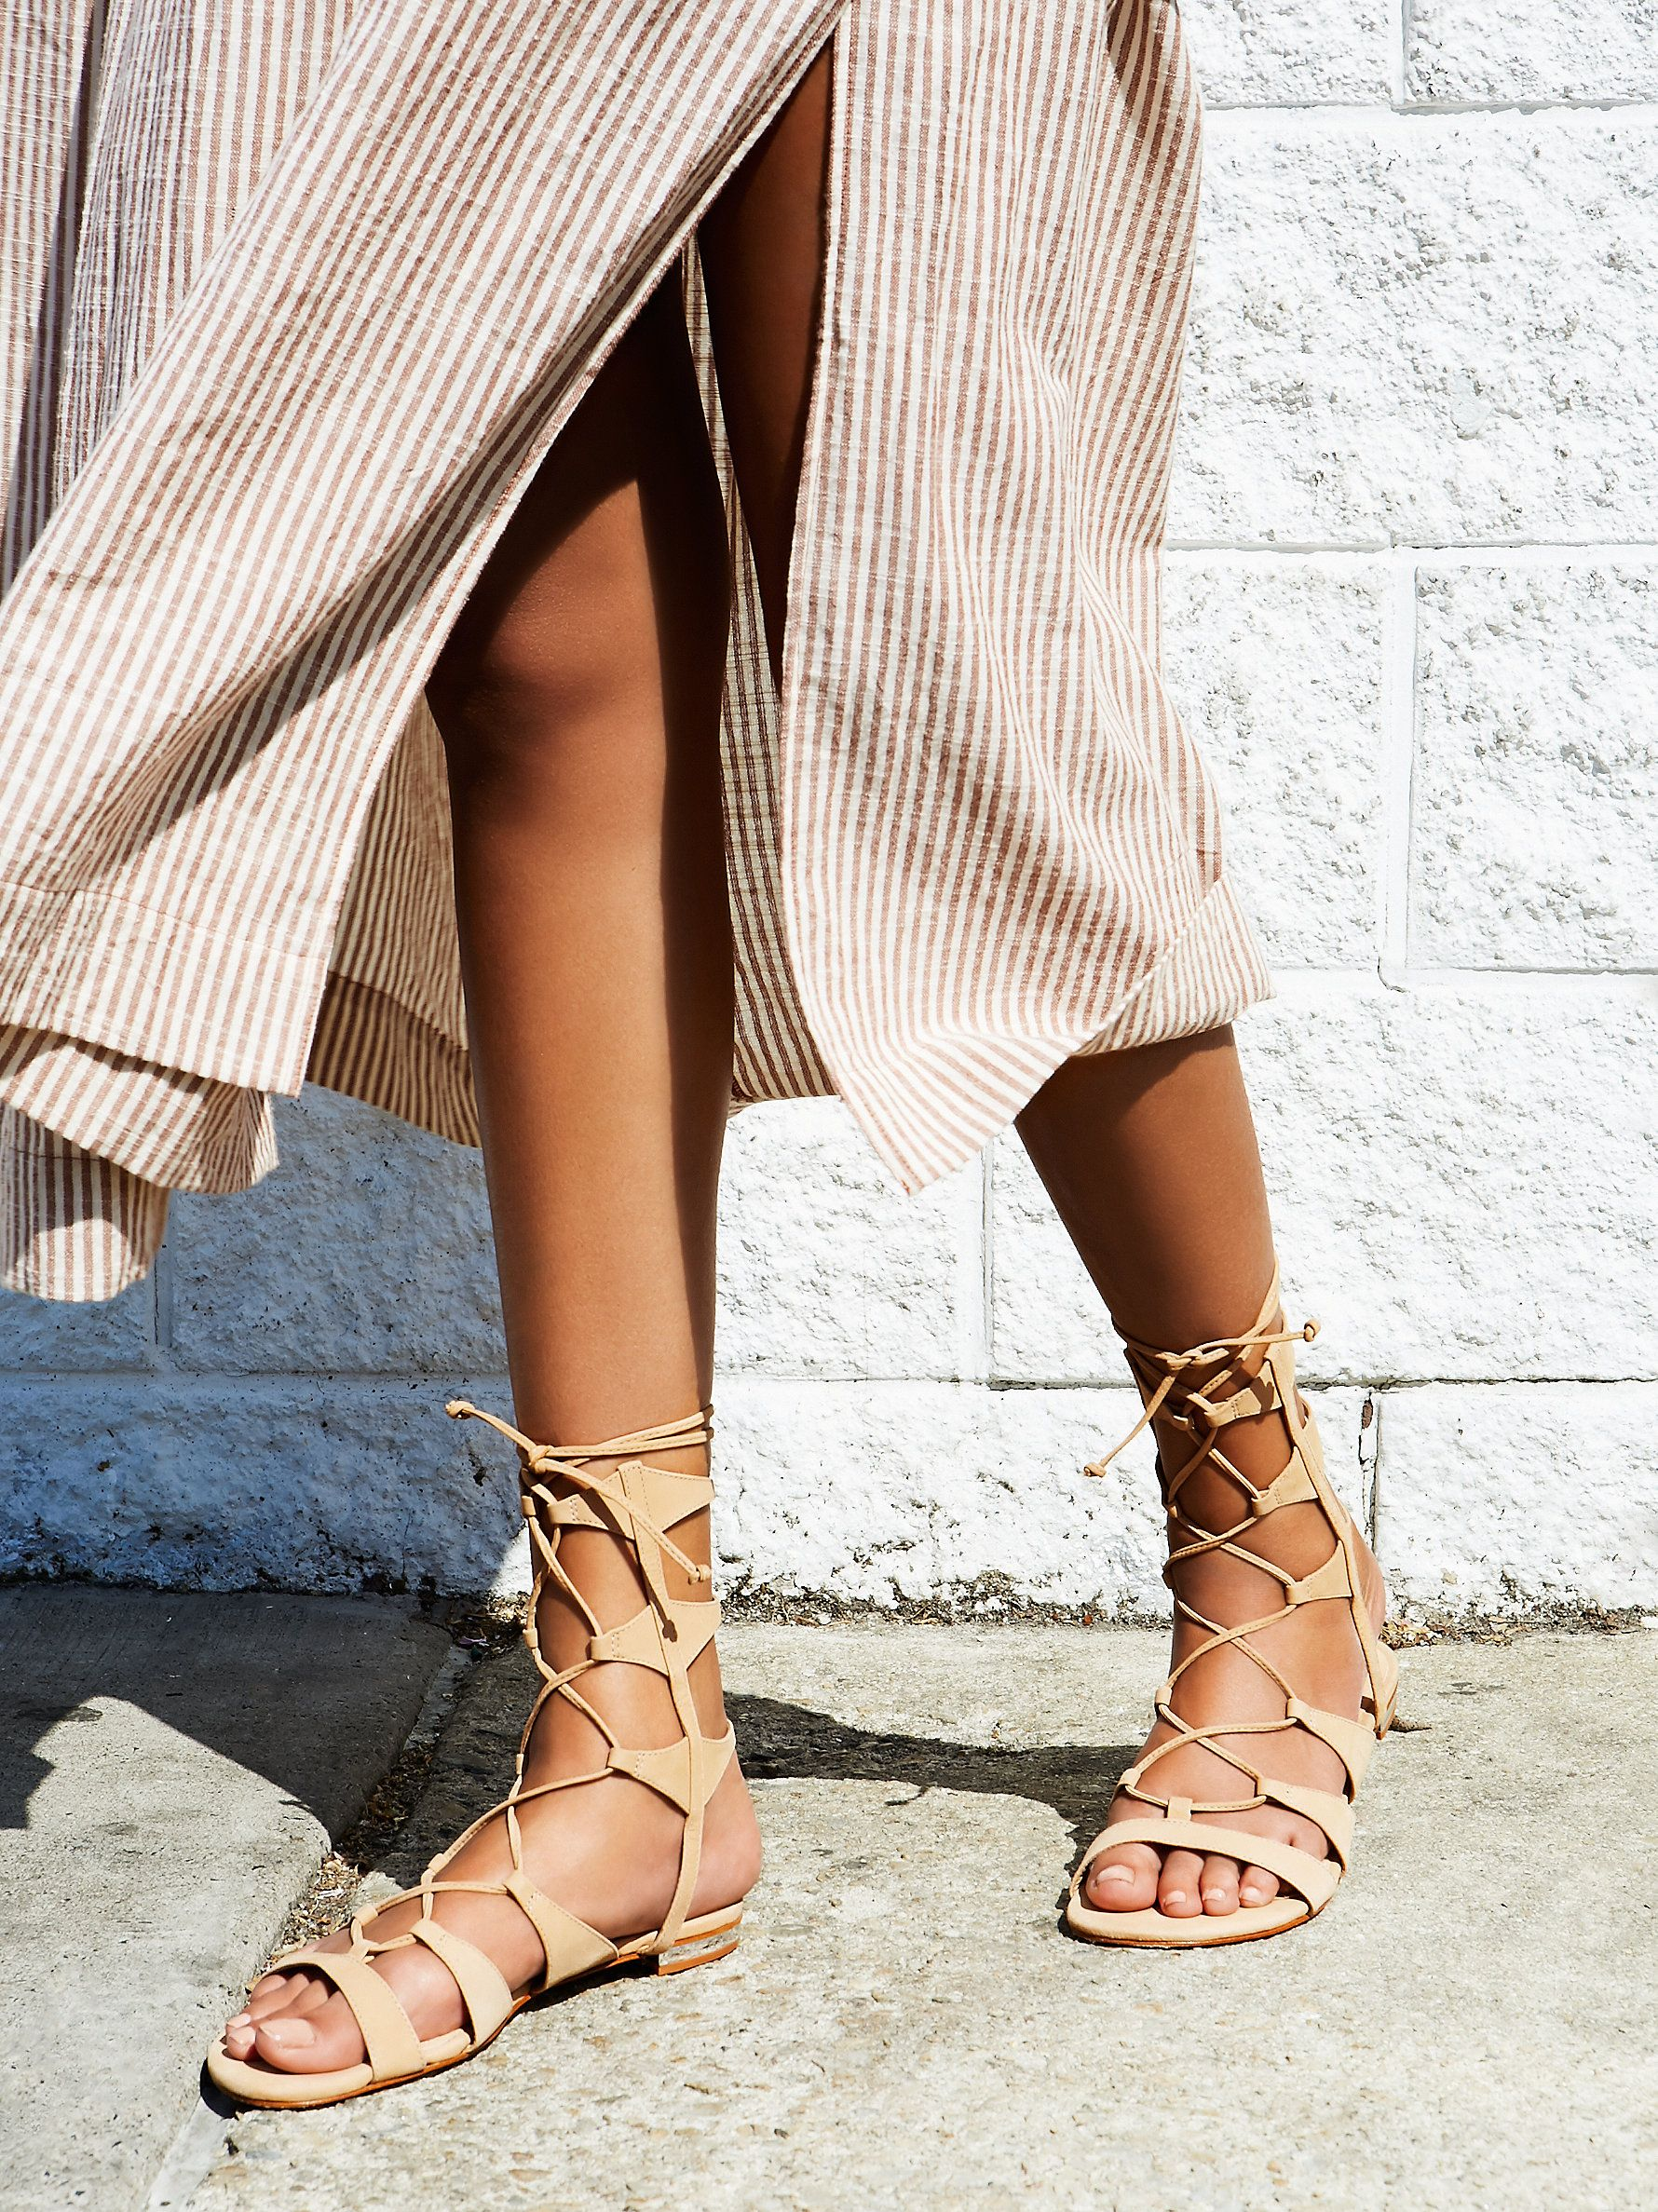 Schutz Lina Lace Up Gladiator Sandals// #dress #MaxiDress #sandals #LaceUps #summer #summertime #fashion #style #stylish #Schutz @schutzshoes #FreePeople @freepeople